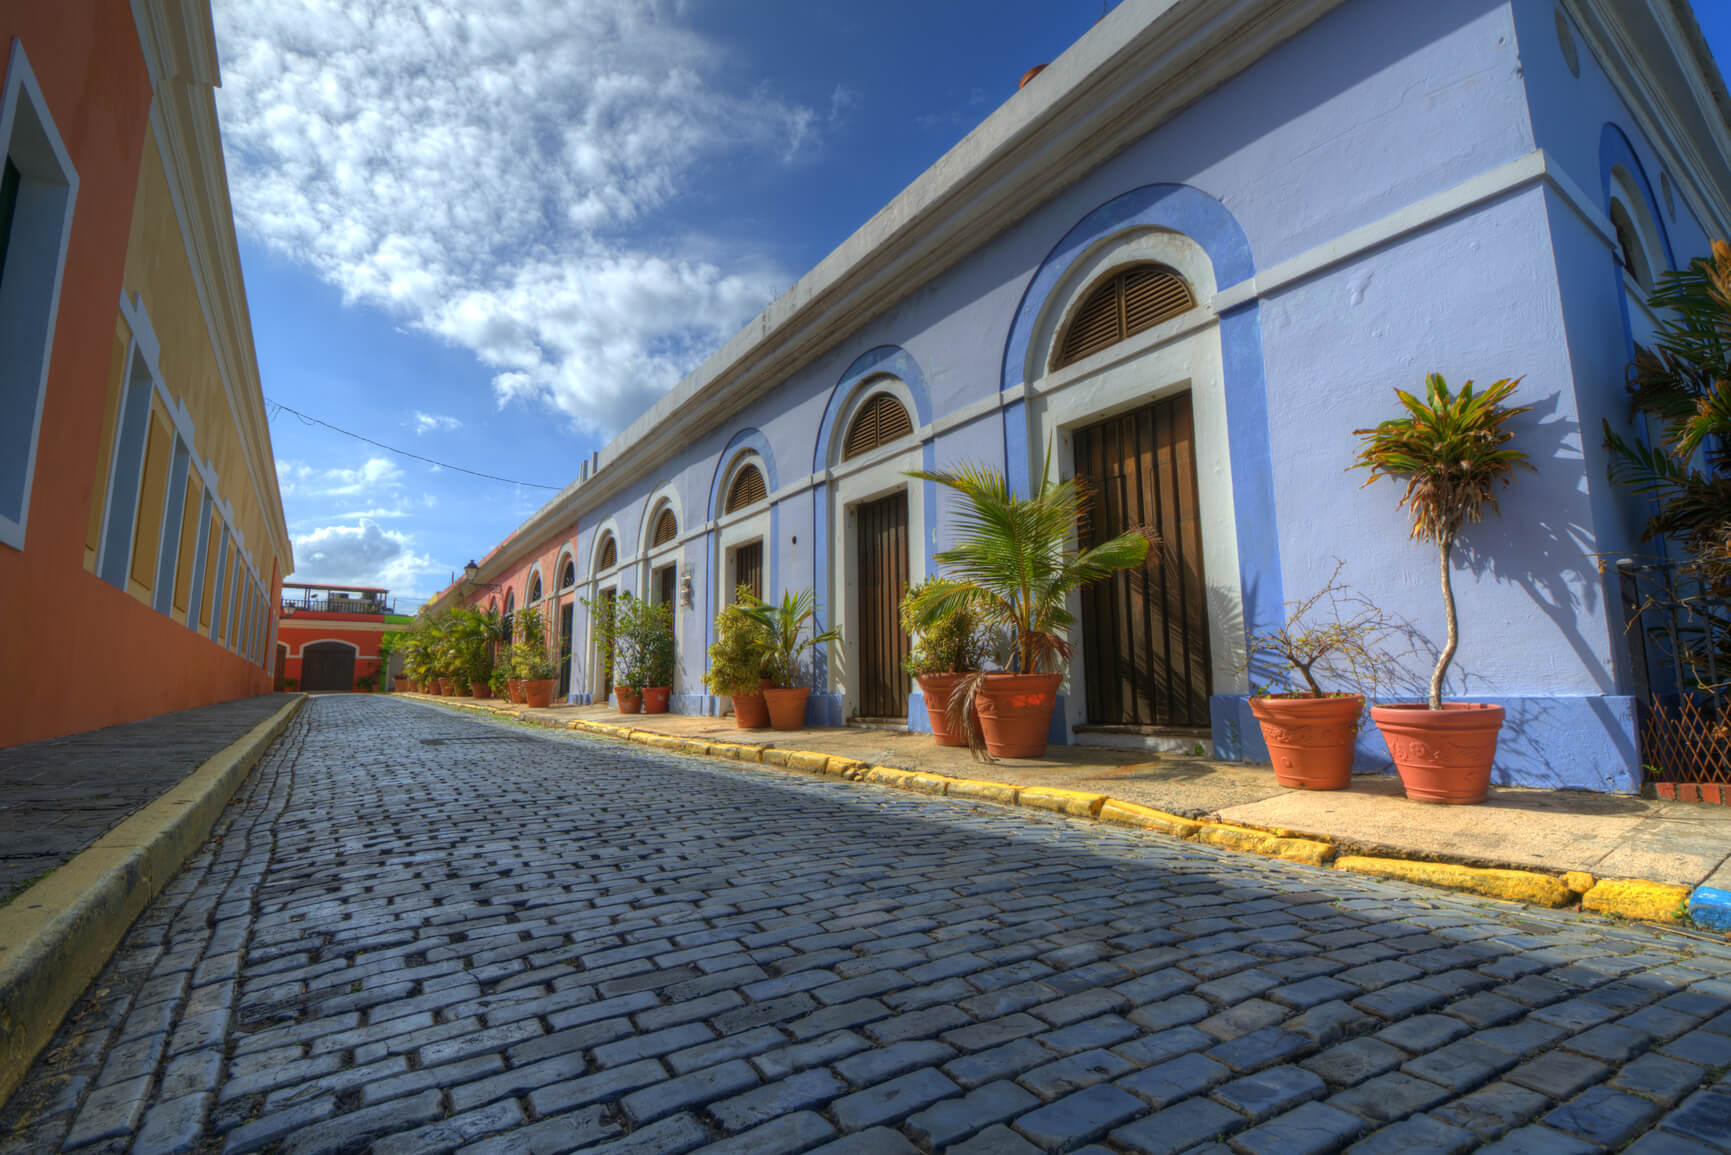 Dallas, Texas to San Juan, Puerto Rico for only $180 roundtrip (Feb-Mar dates)